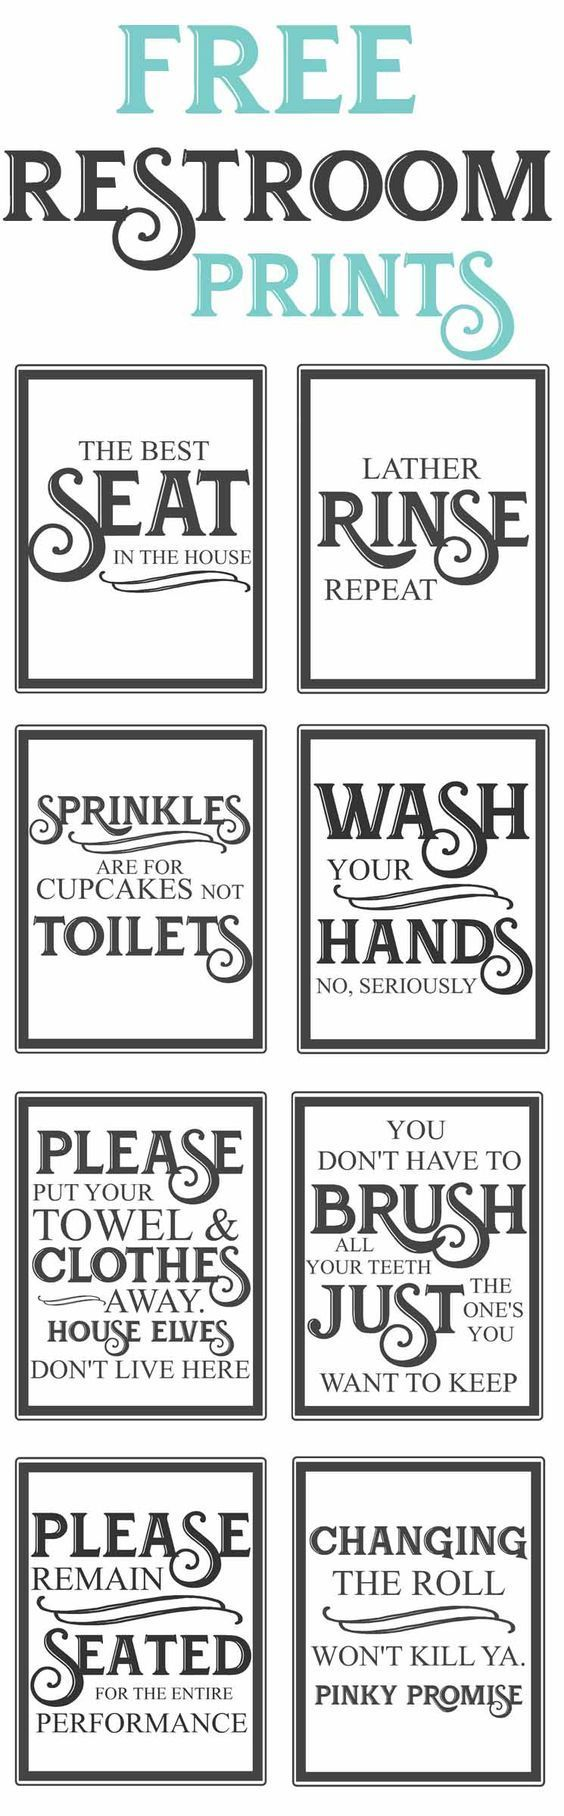 Bathroom Sign Sayings free vintage bathroom printables | funny quotes, vintage inspired